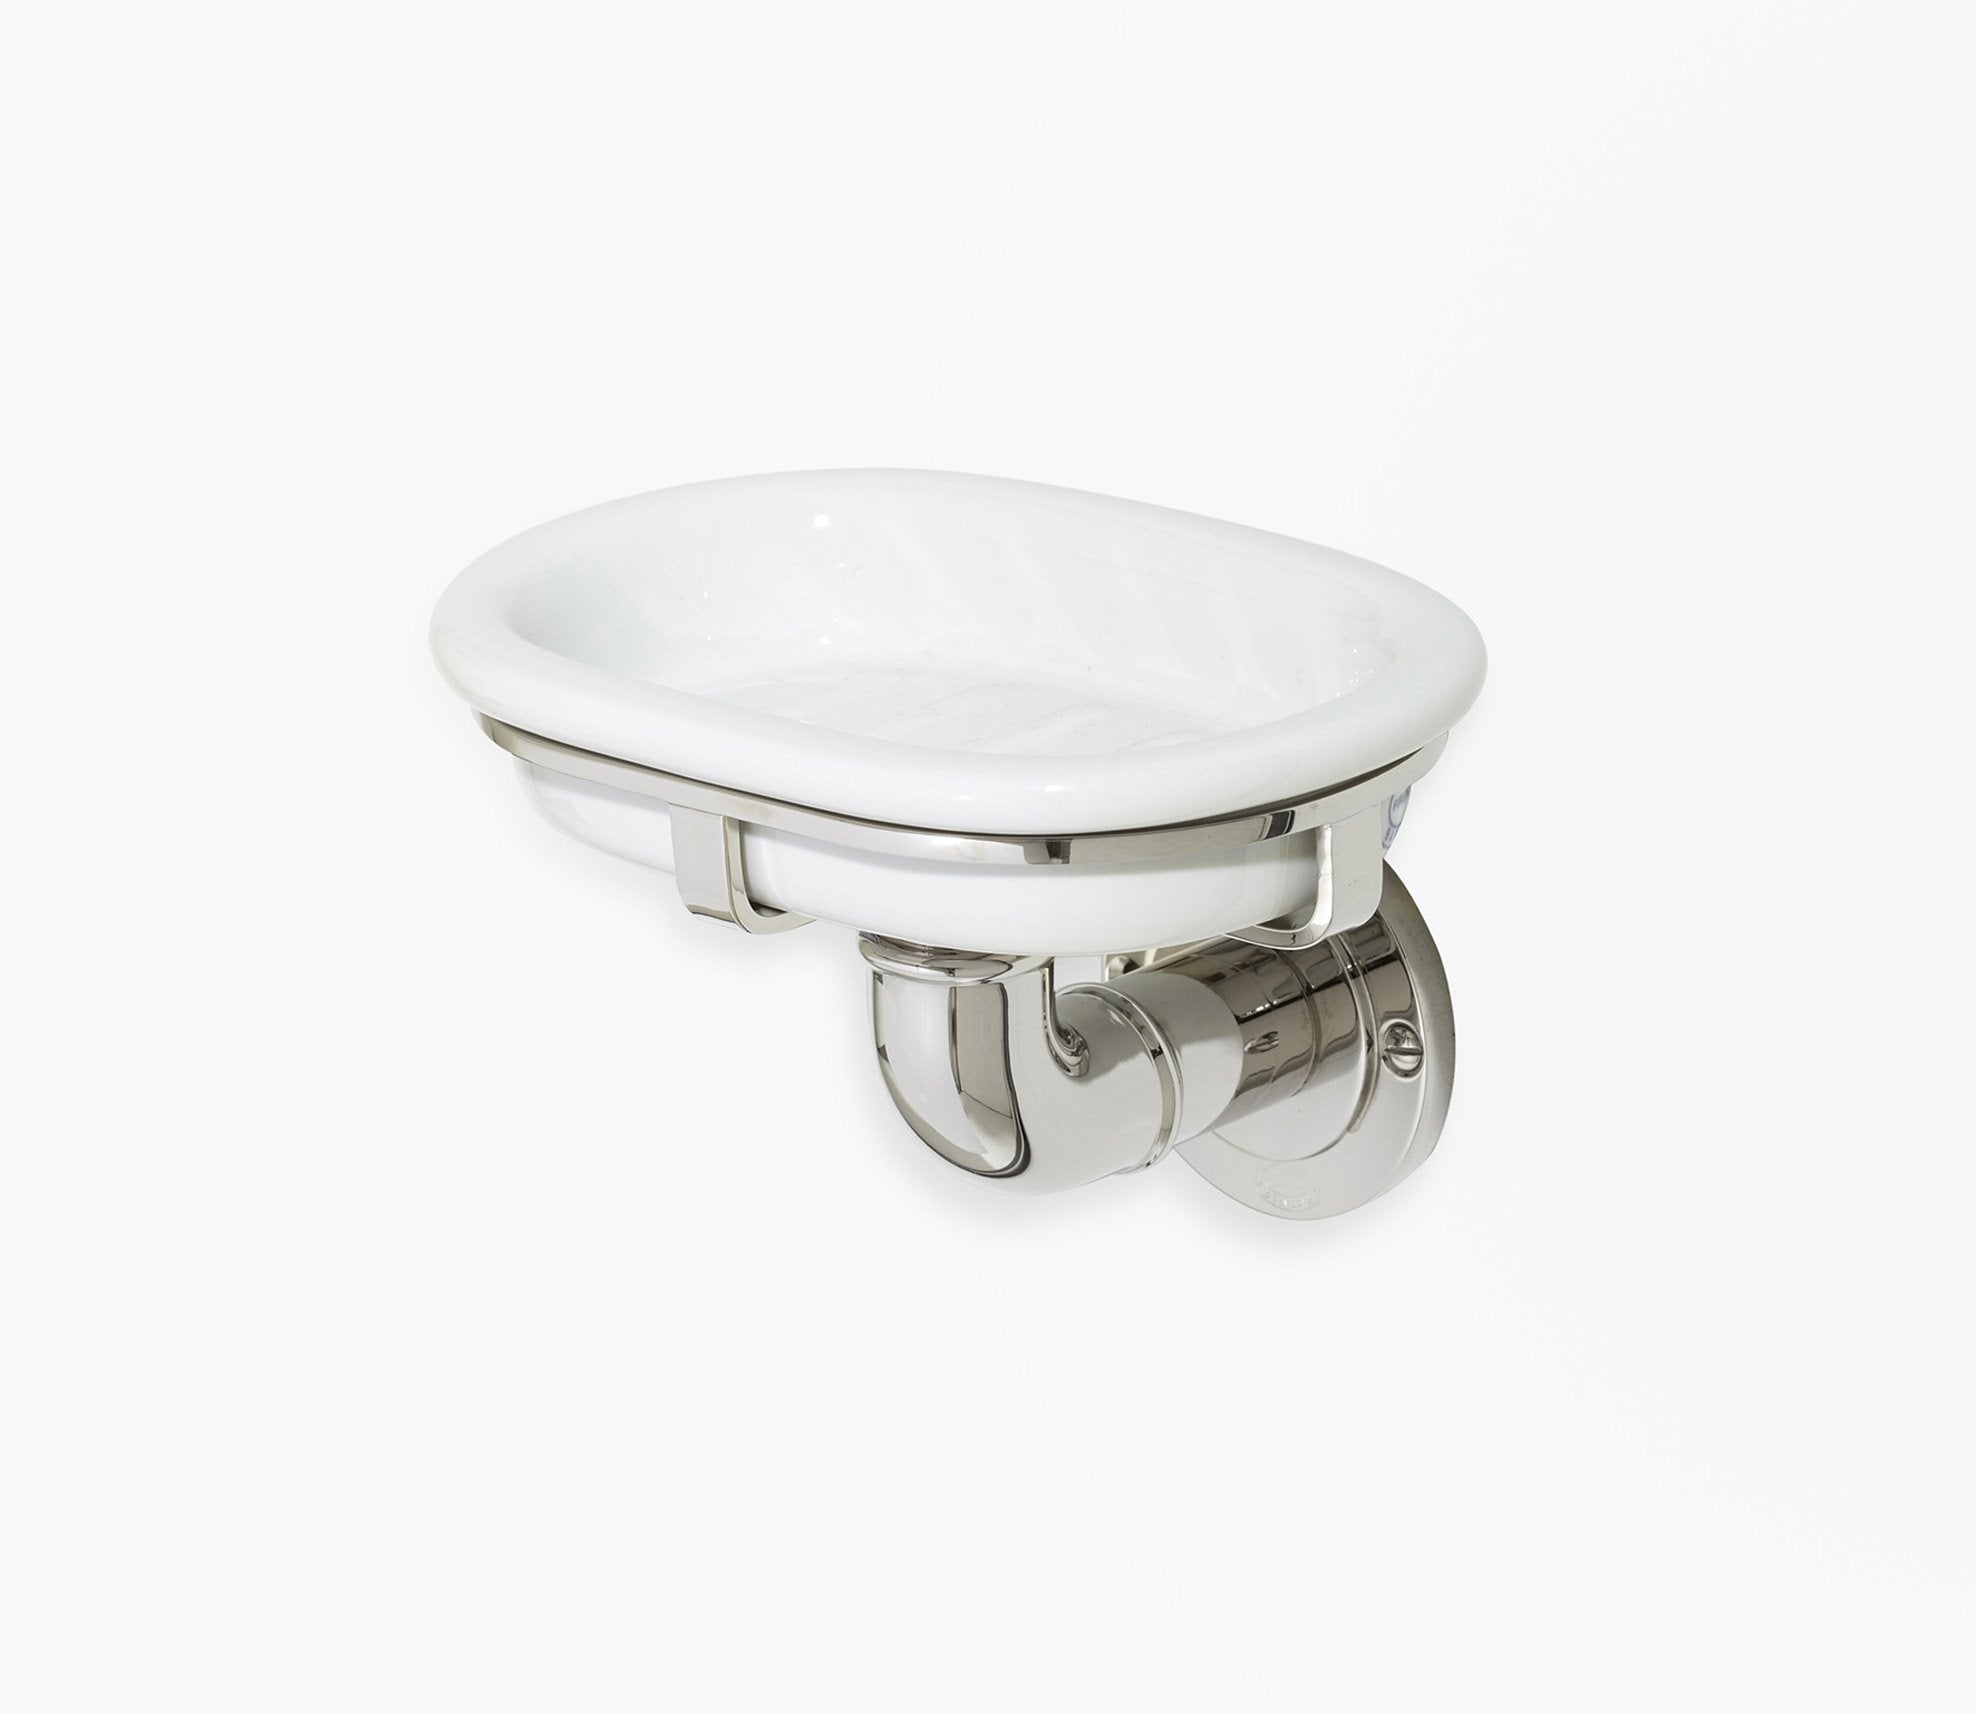 Moderna Wall Soap Dish Holder White Porcelain Product Image 1